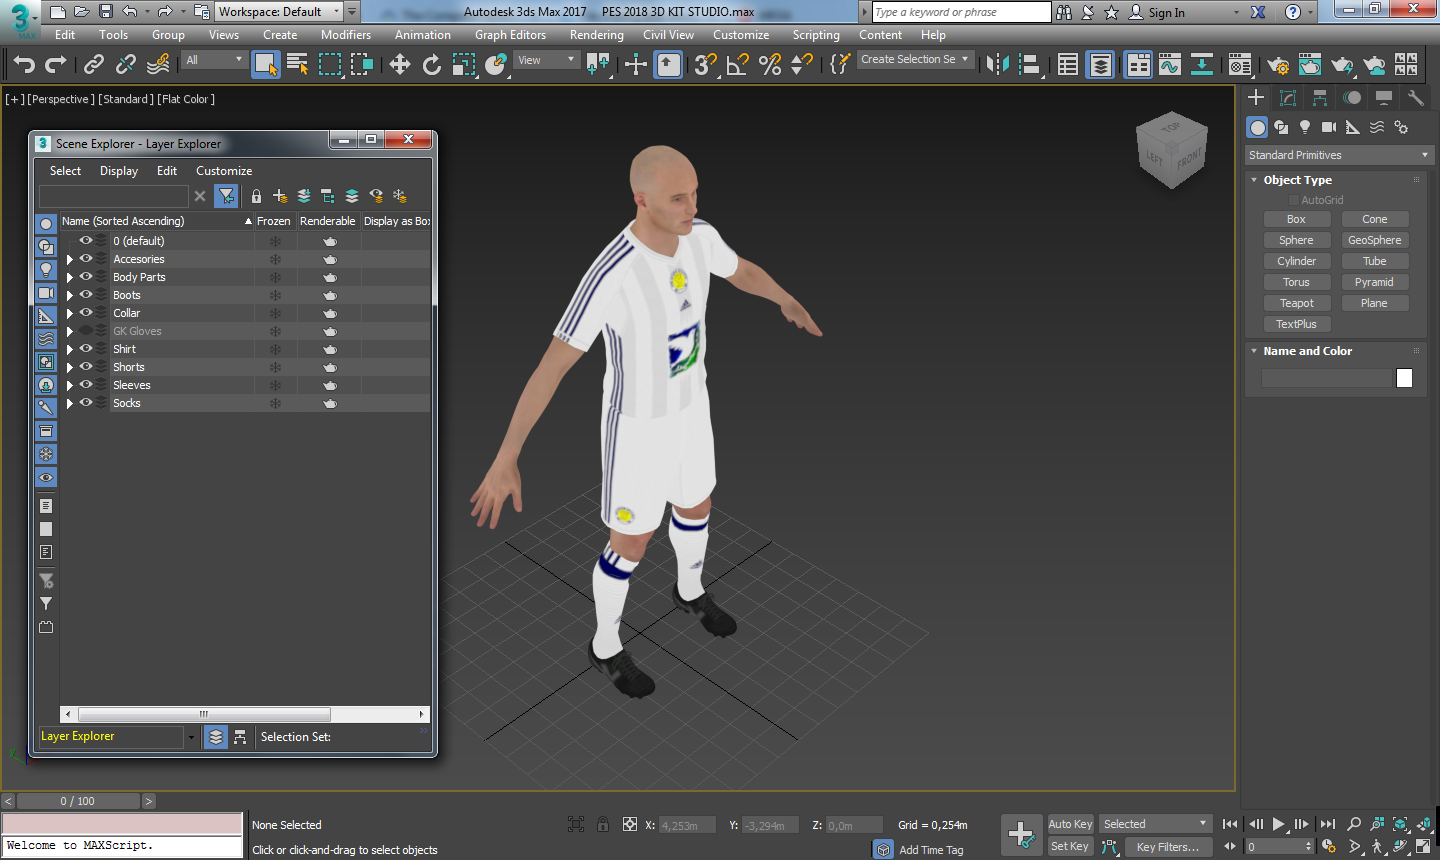 PES2018 3D Kit Studio [Blender] by Simonetos The Greek